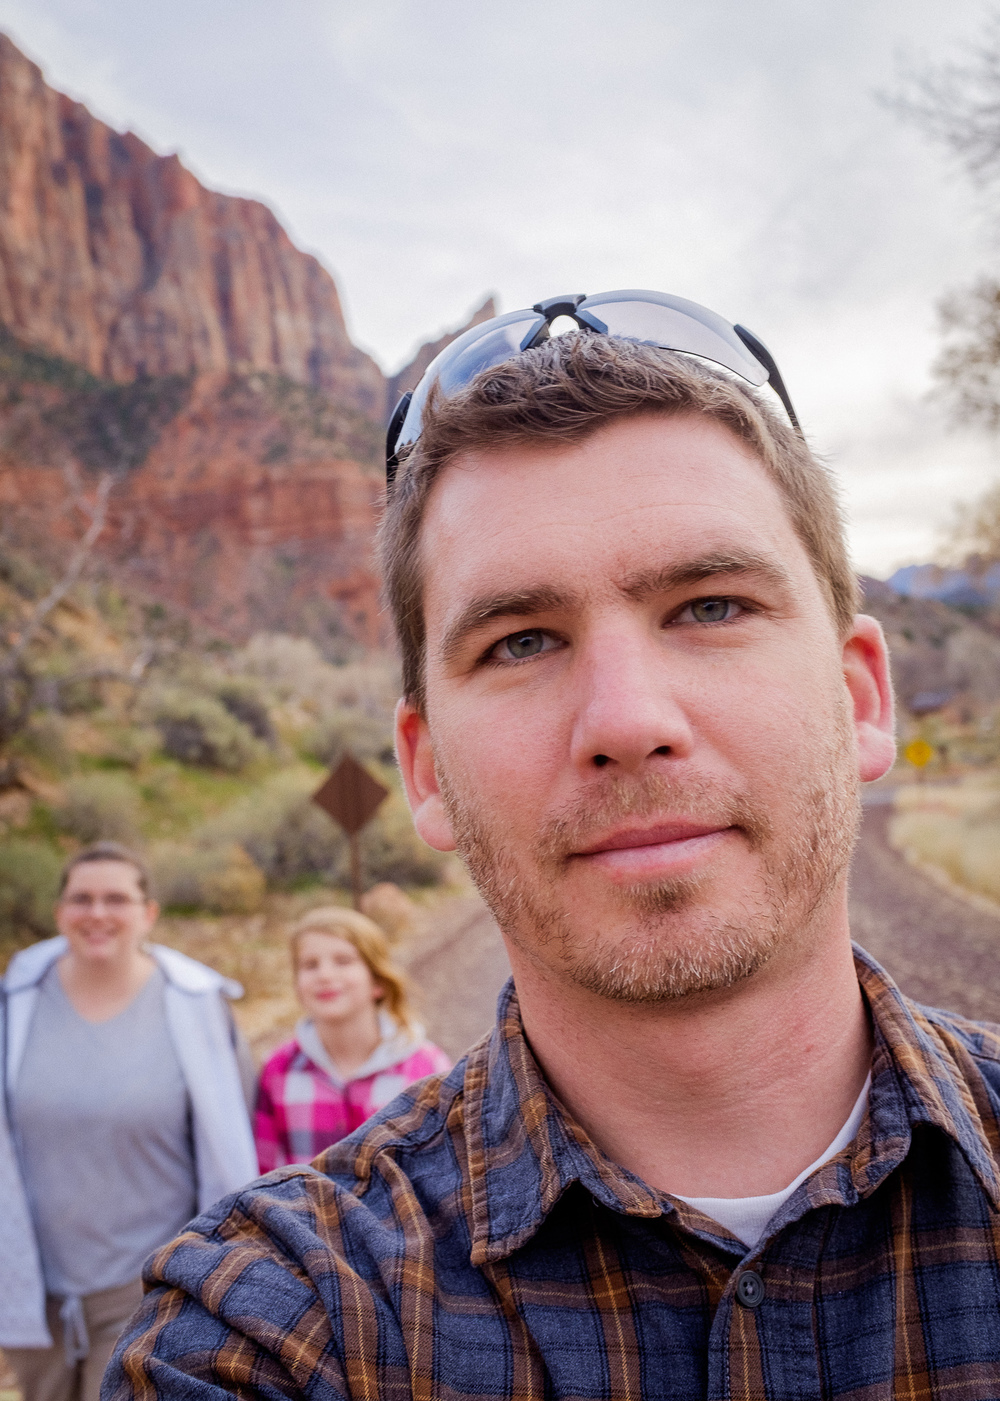 That's Me! Walking through Zion with my wife and our youngest.    [ Fujifilm X100t, f/5.6, 1/210s, ISO 200 ]